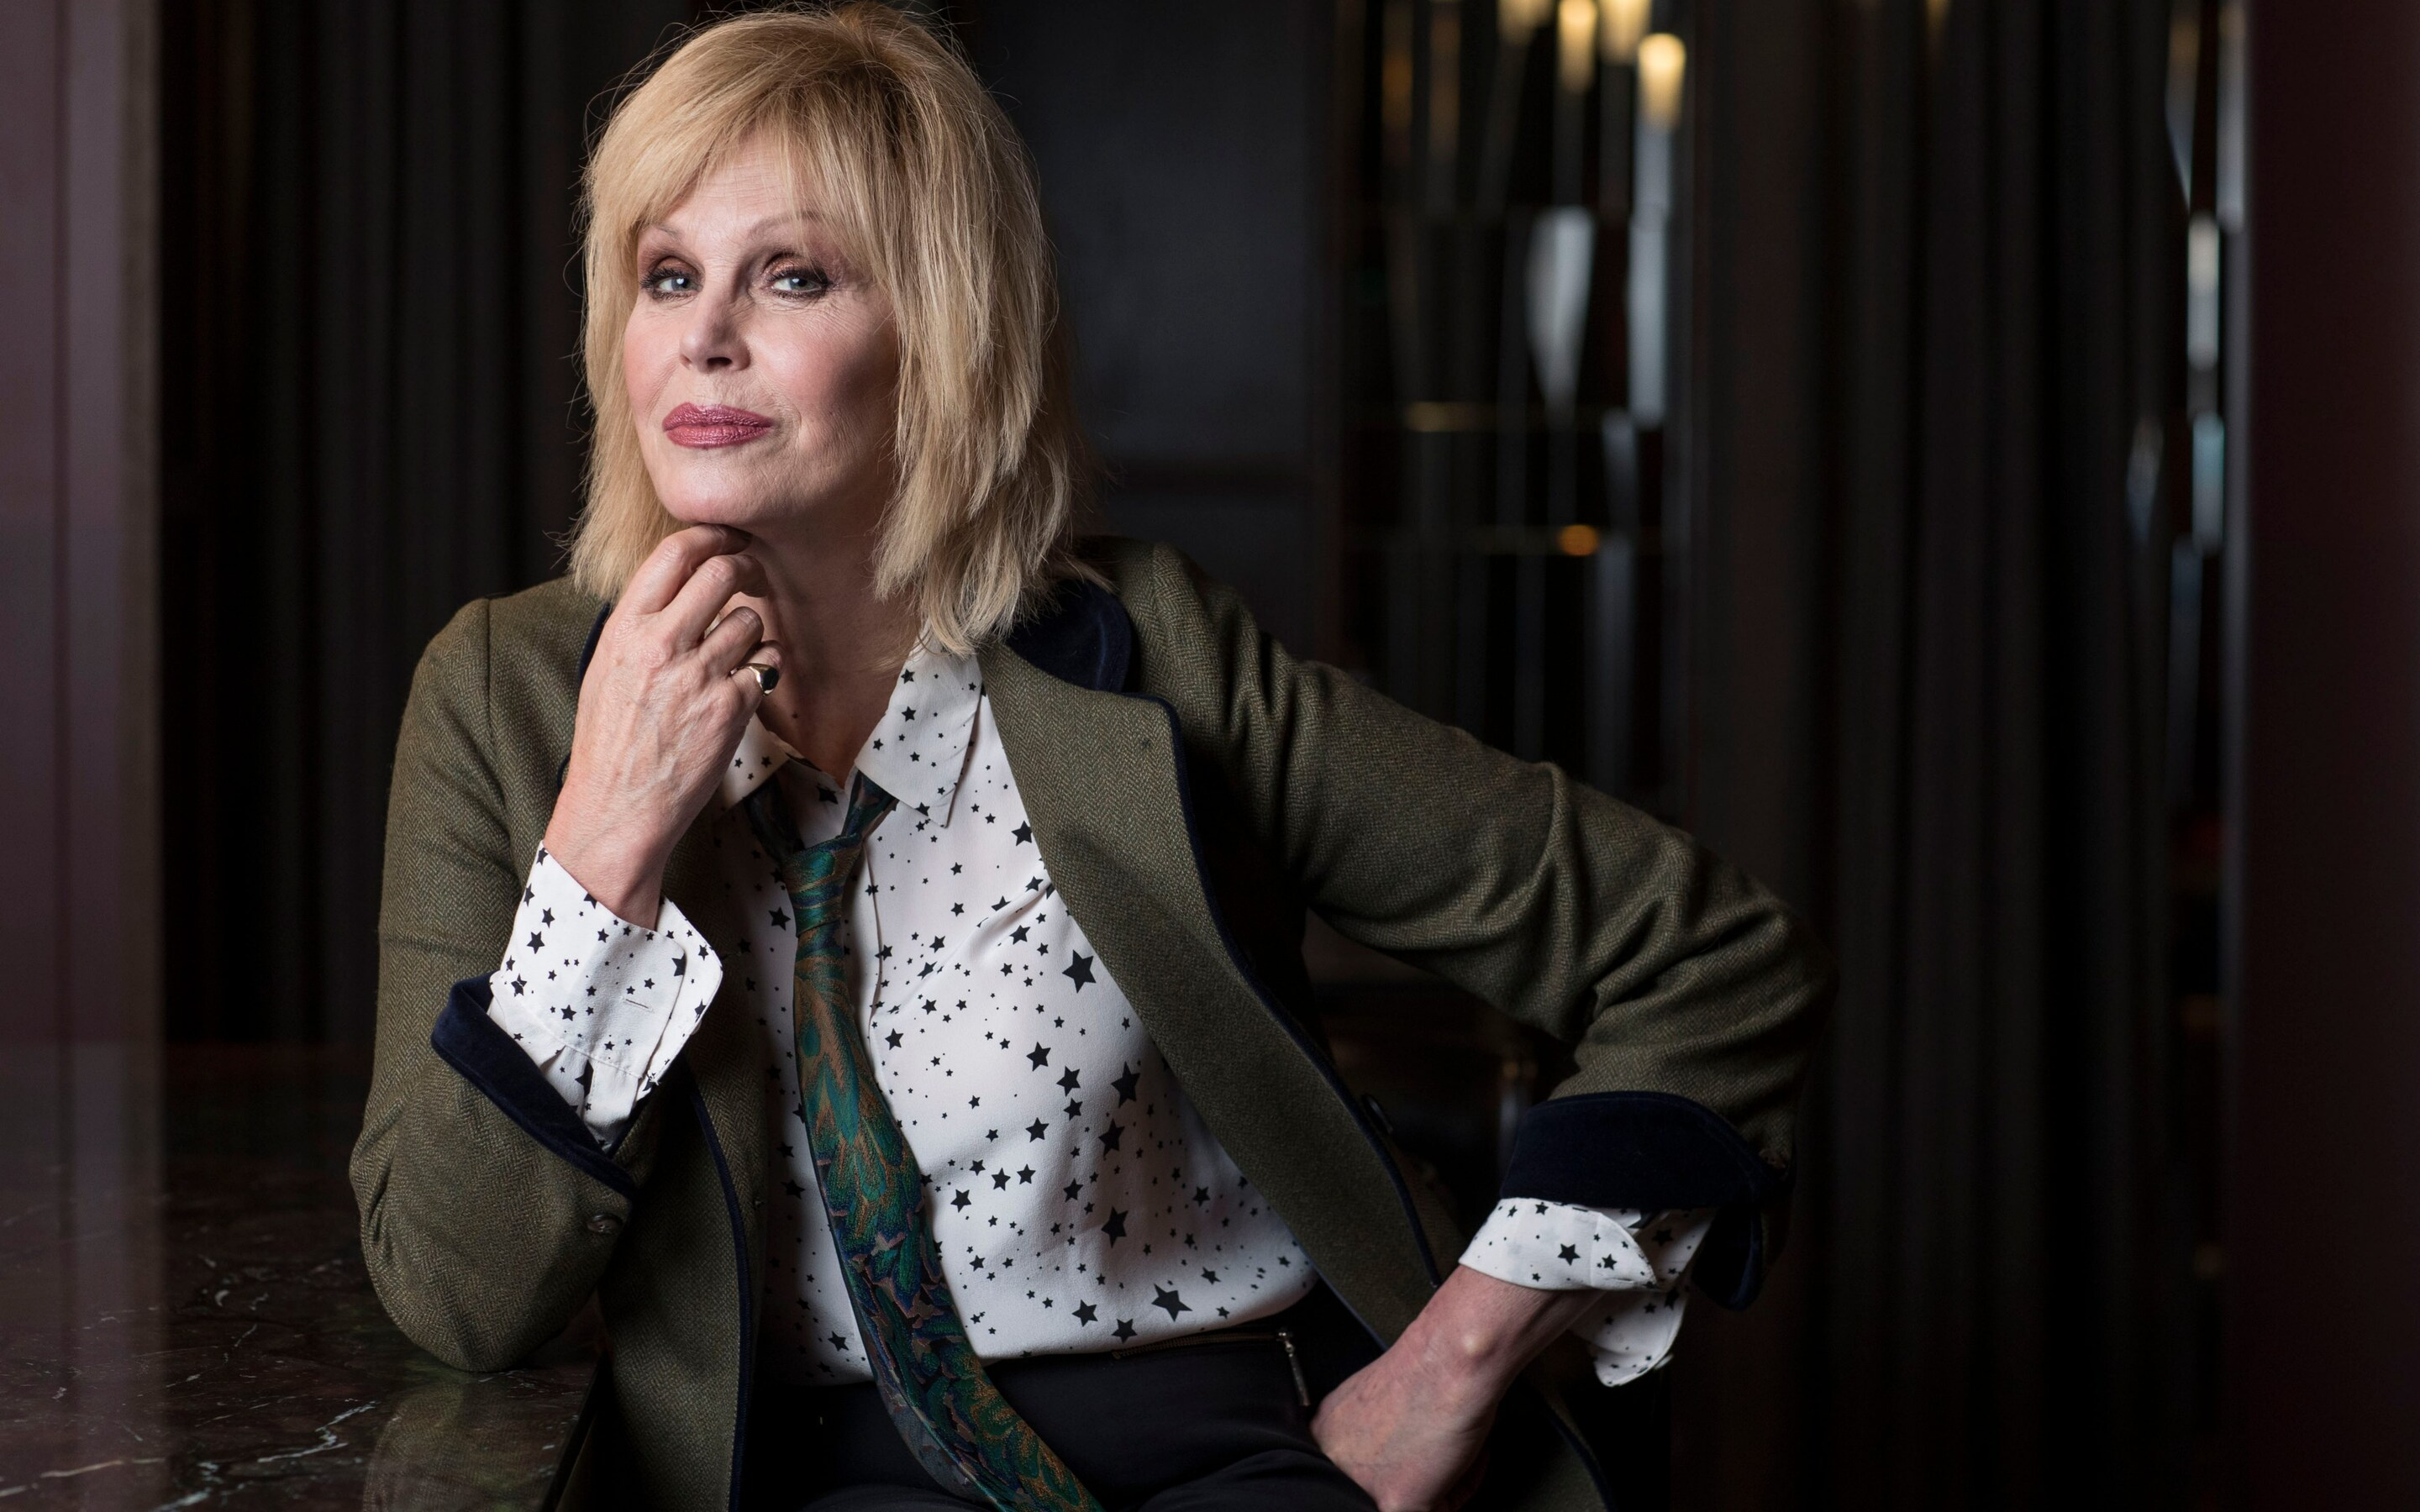 2018 Bafta film awards: Joanna Lumley to host, as The Shape of Water and Darkest Hour lead nominations